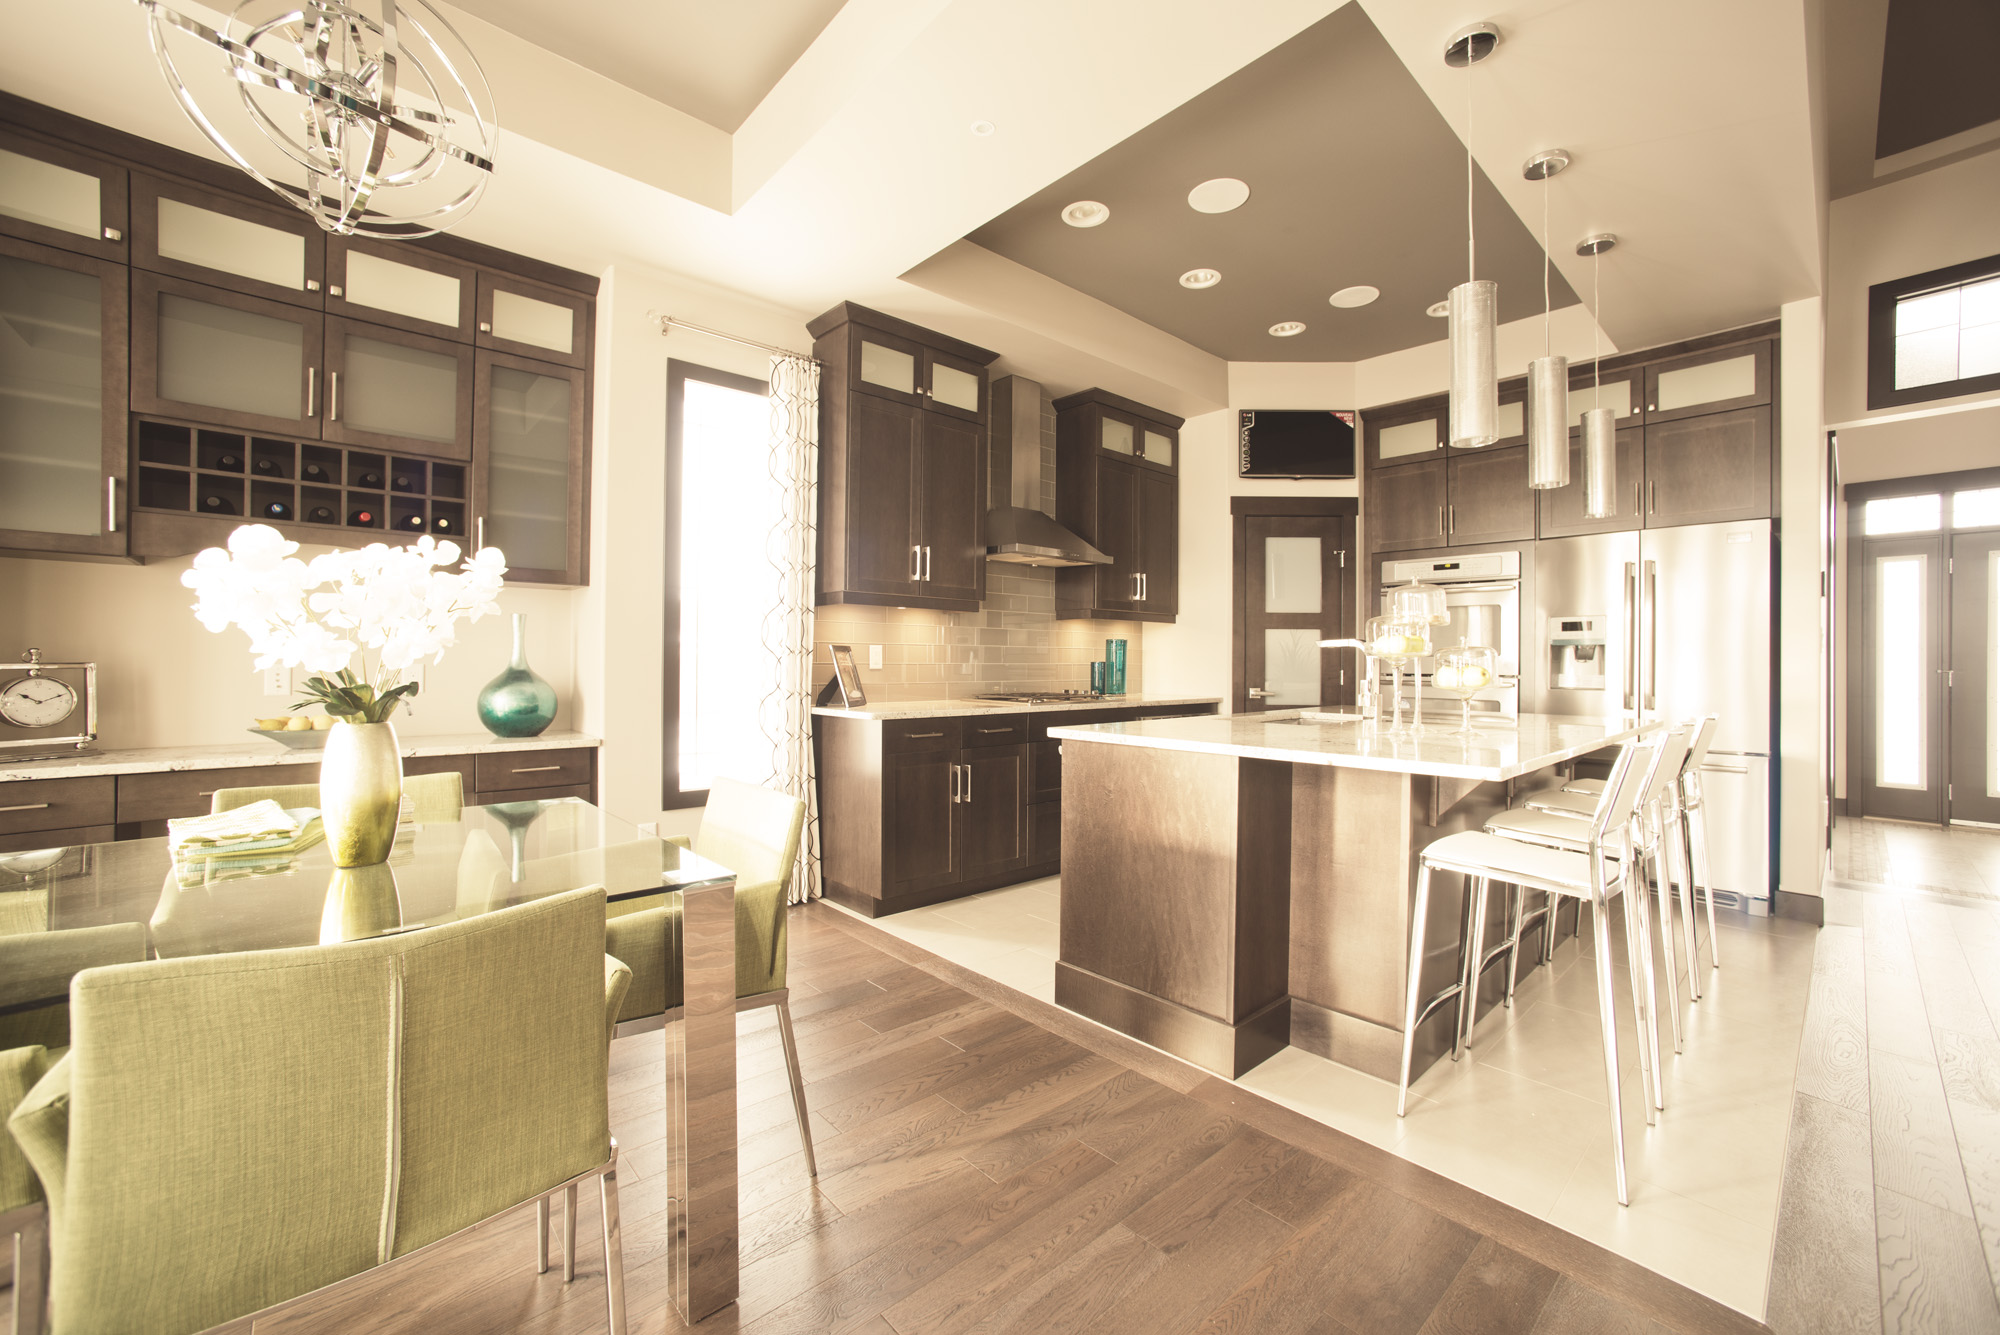 And Design Show Edmonton 100 Home And Design Show Edmonton Mattamy Homes New Homes For Sale In